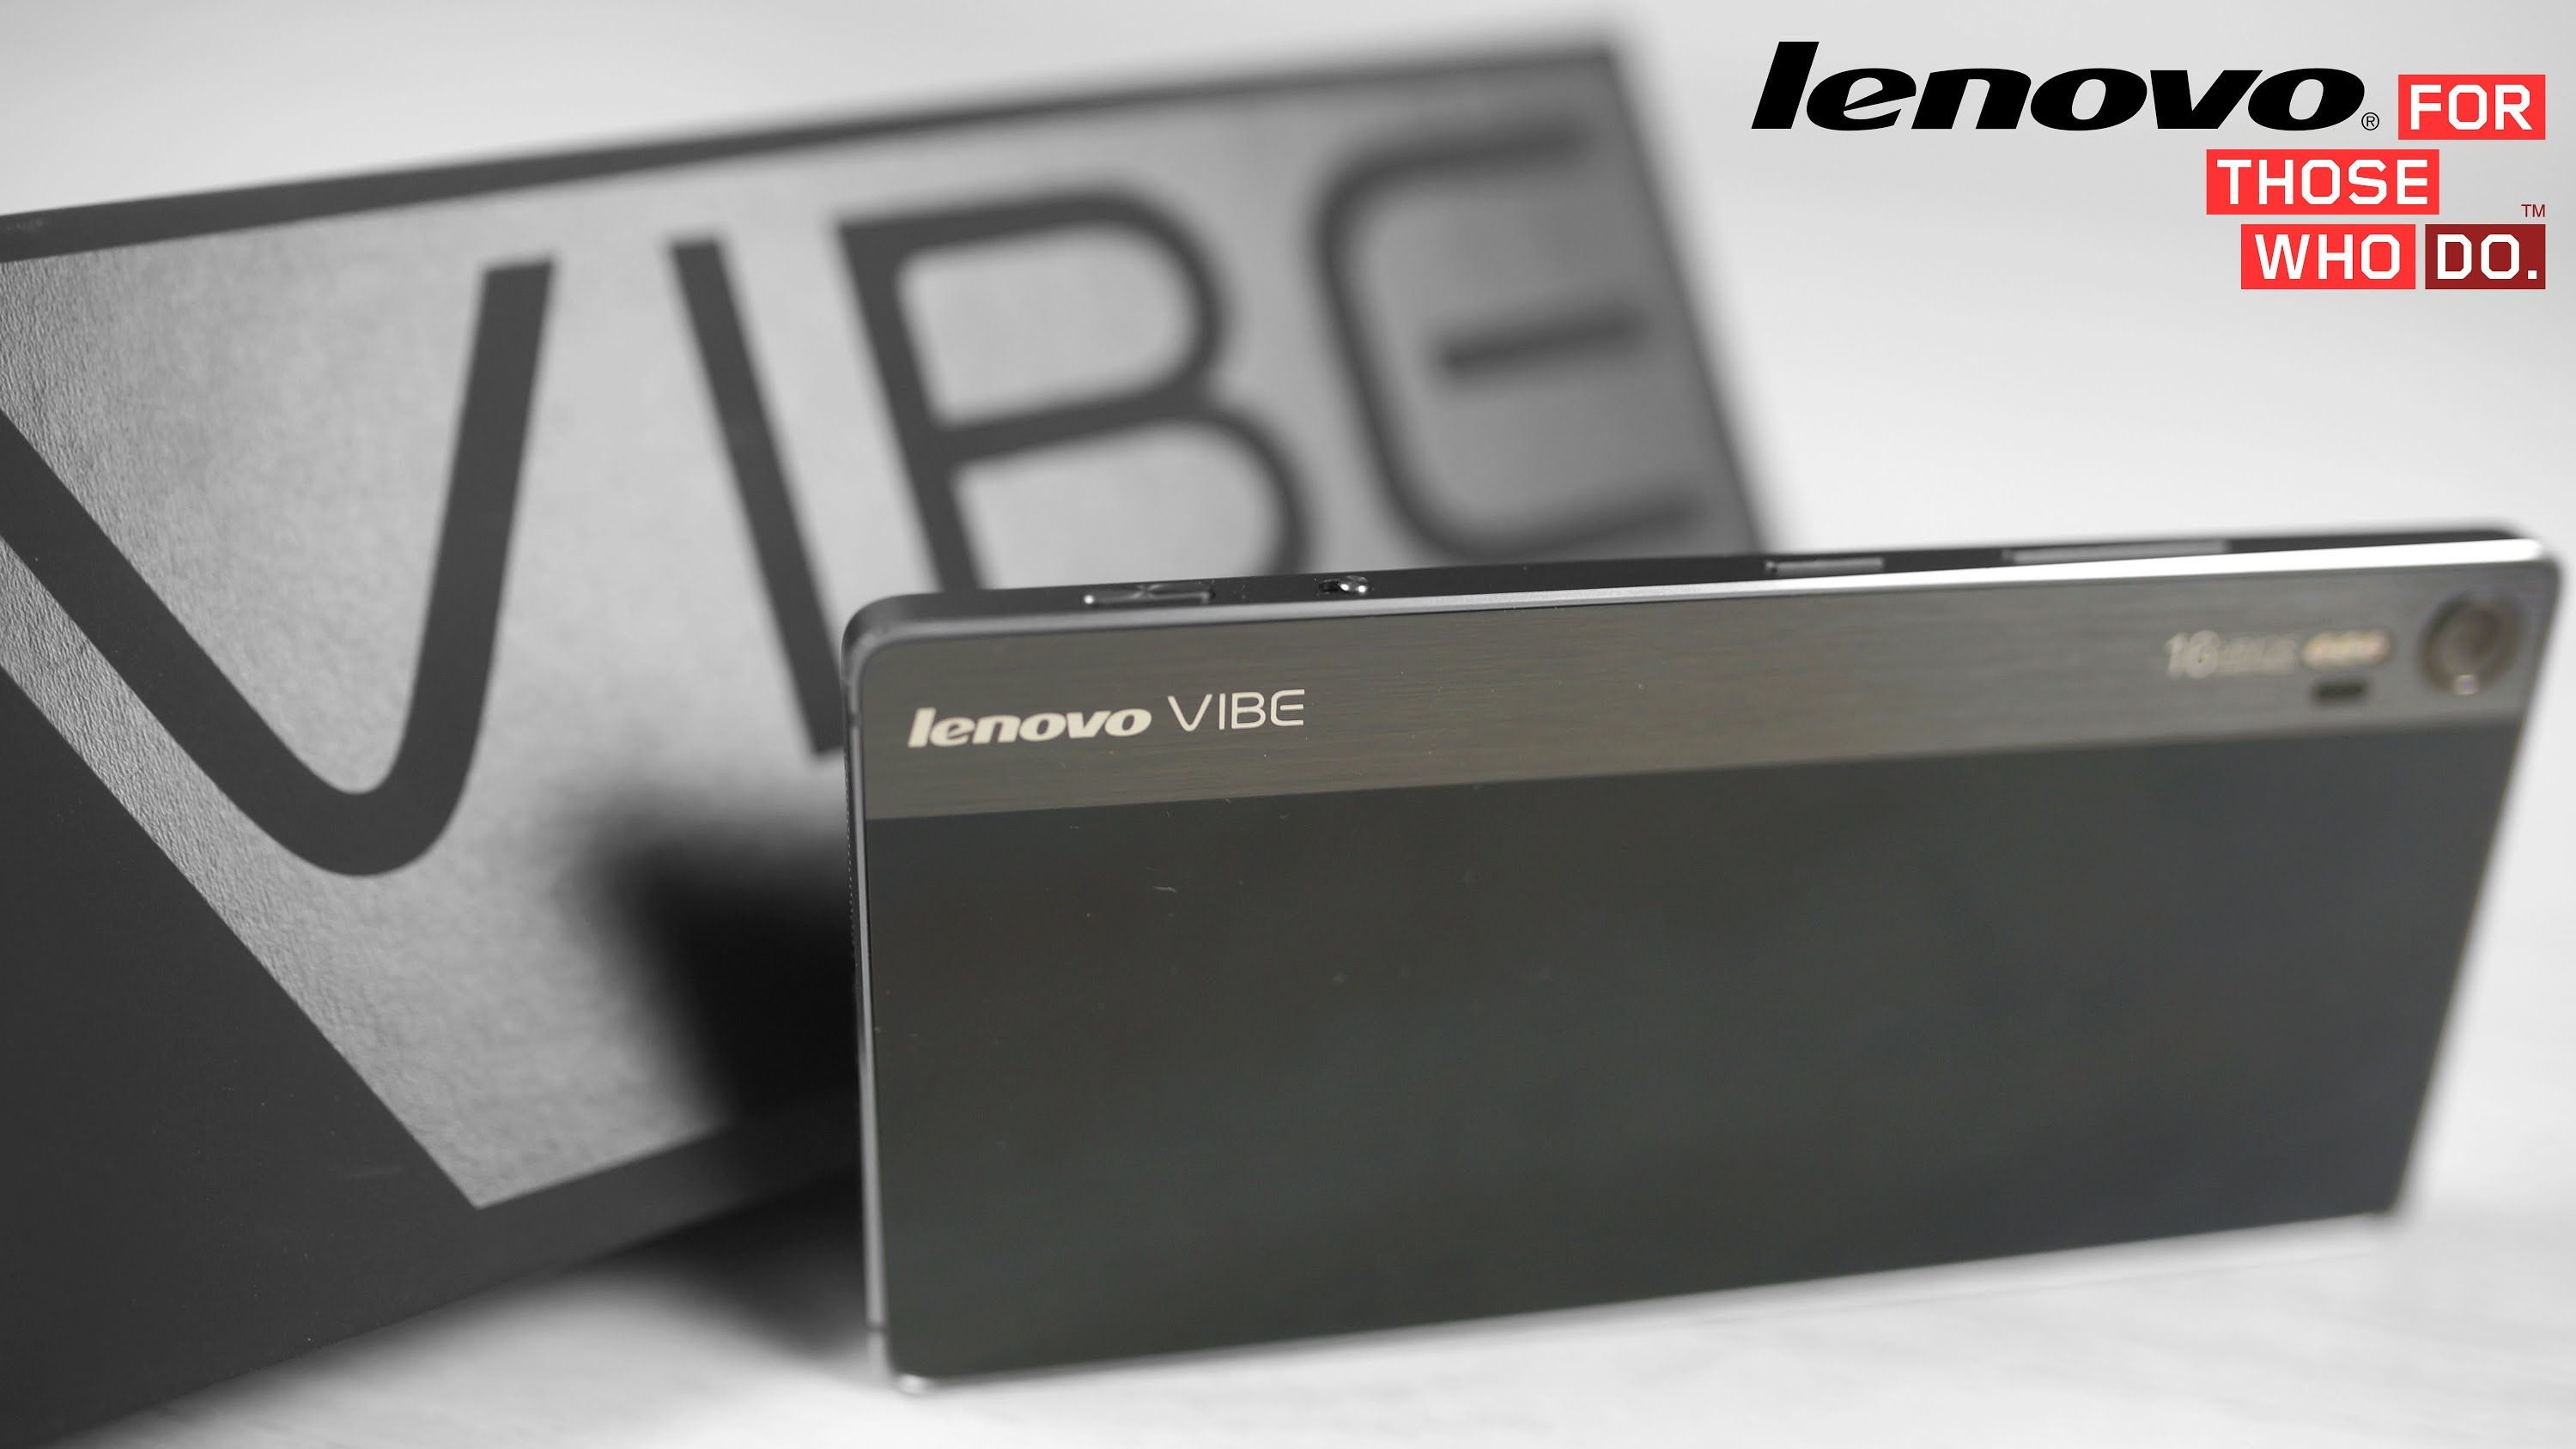 Official Stock Rom Frimware Lenovo Vibe Shot Z90 You Can Use This Grey Smartphone File To Unbrick Using Qfill Qpst Miflash On Pc Read Here Back